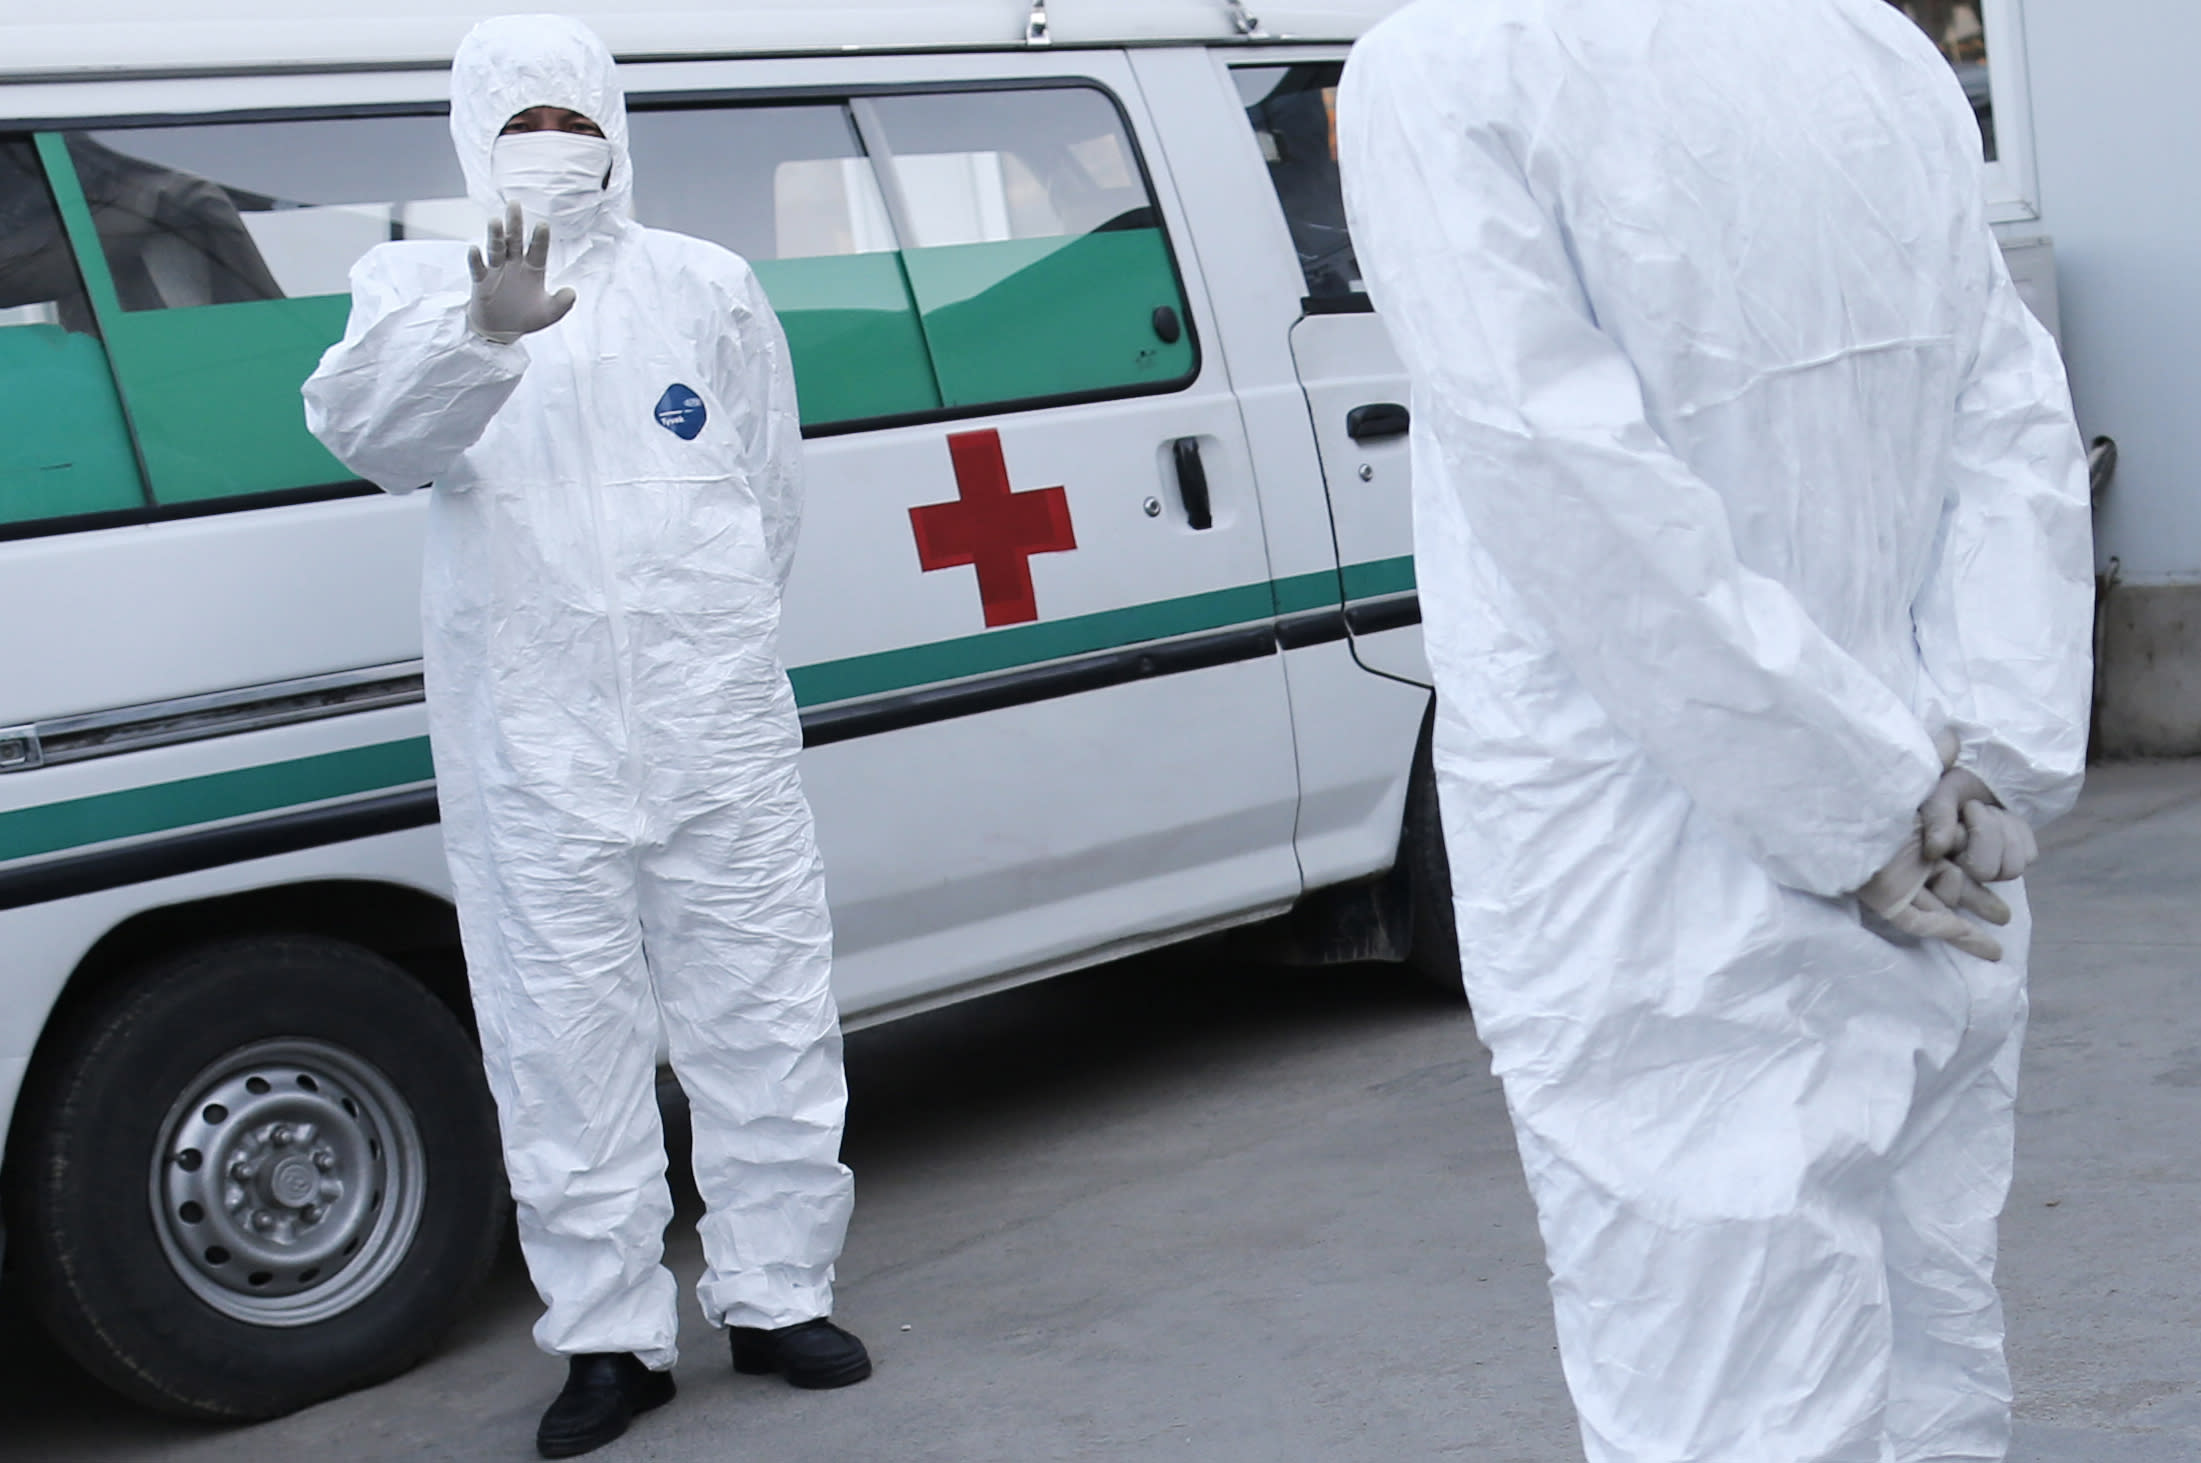 Tour agents: N. Korea may soon lift Ebola restrictions